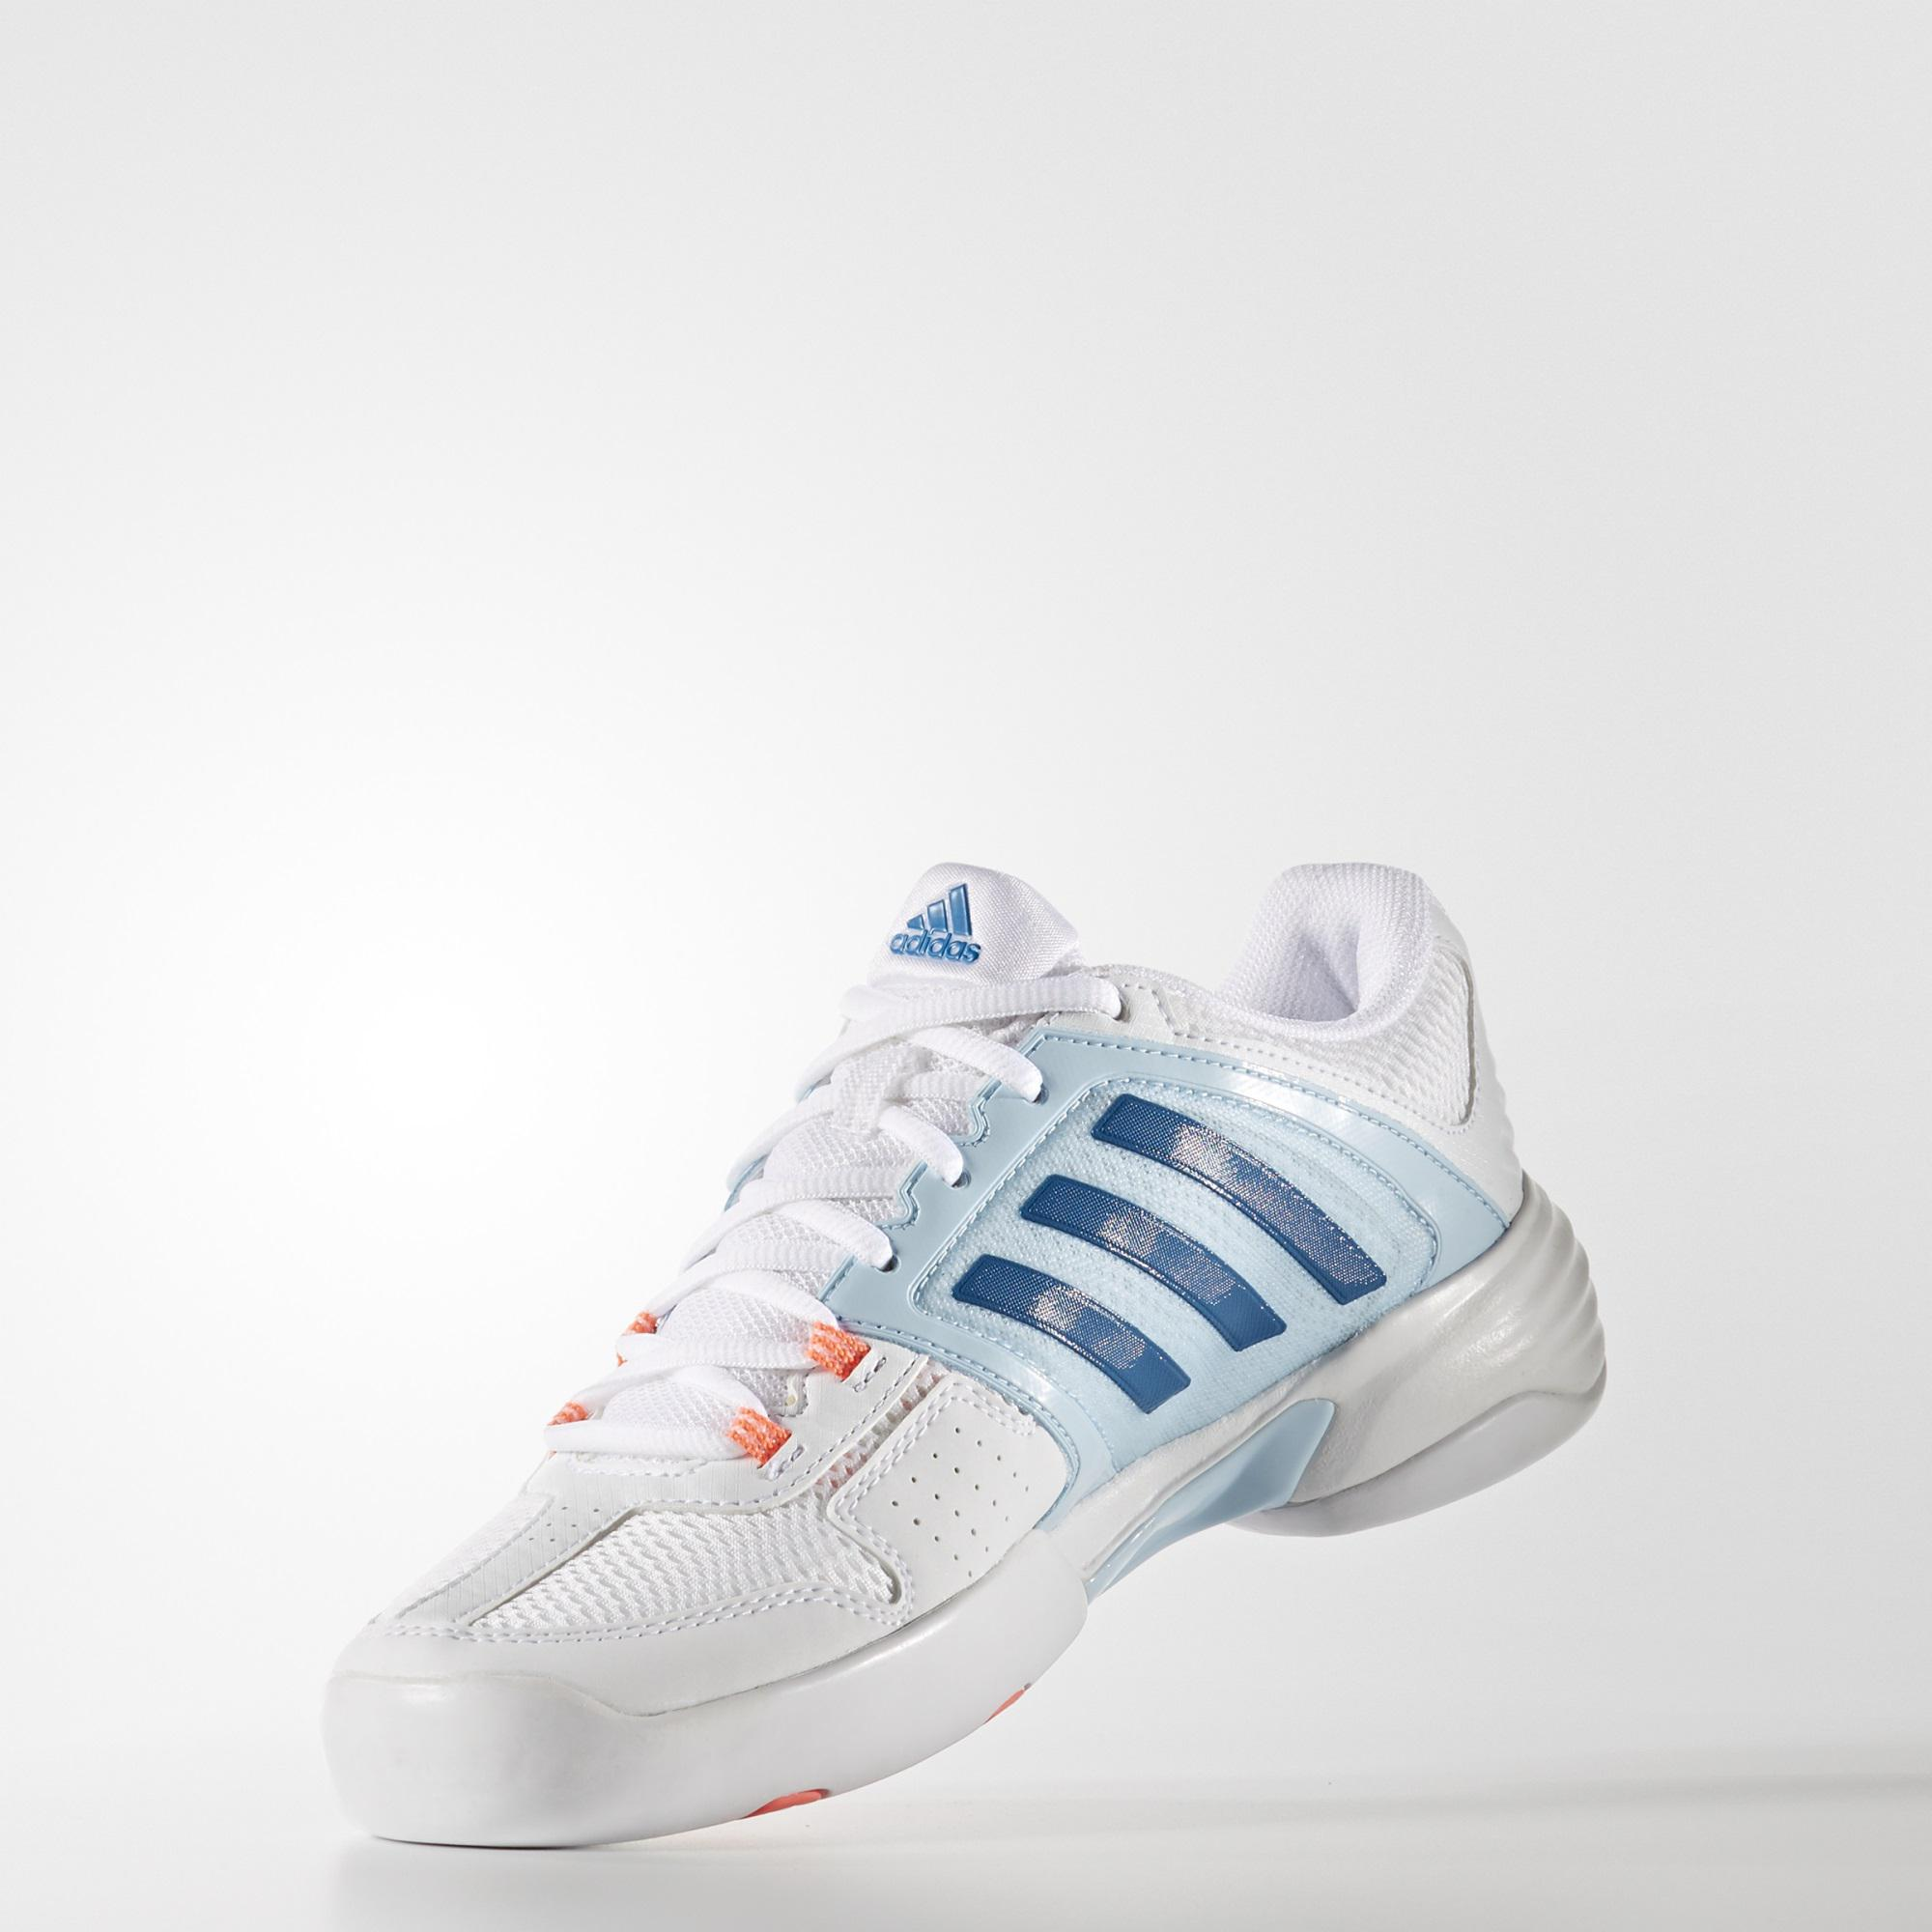 Adidas Womens Barricade Club Carpet Tennis Shoes - White Blue ... cd940b02e